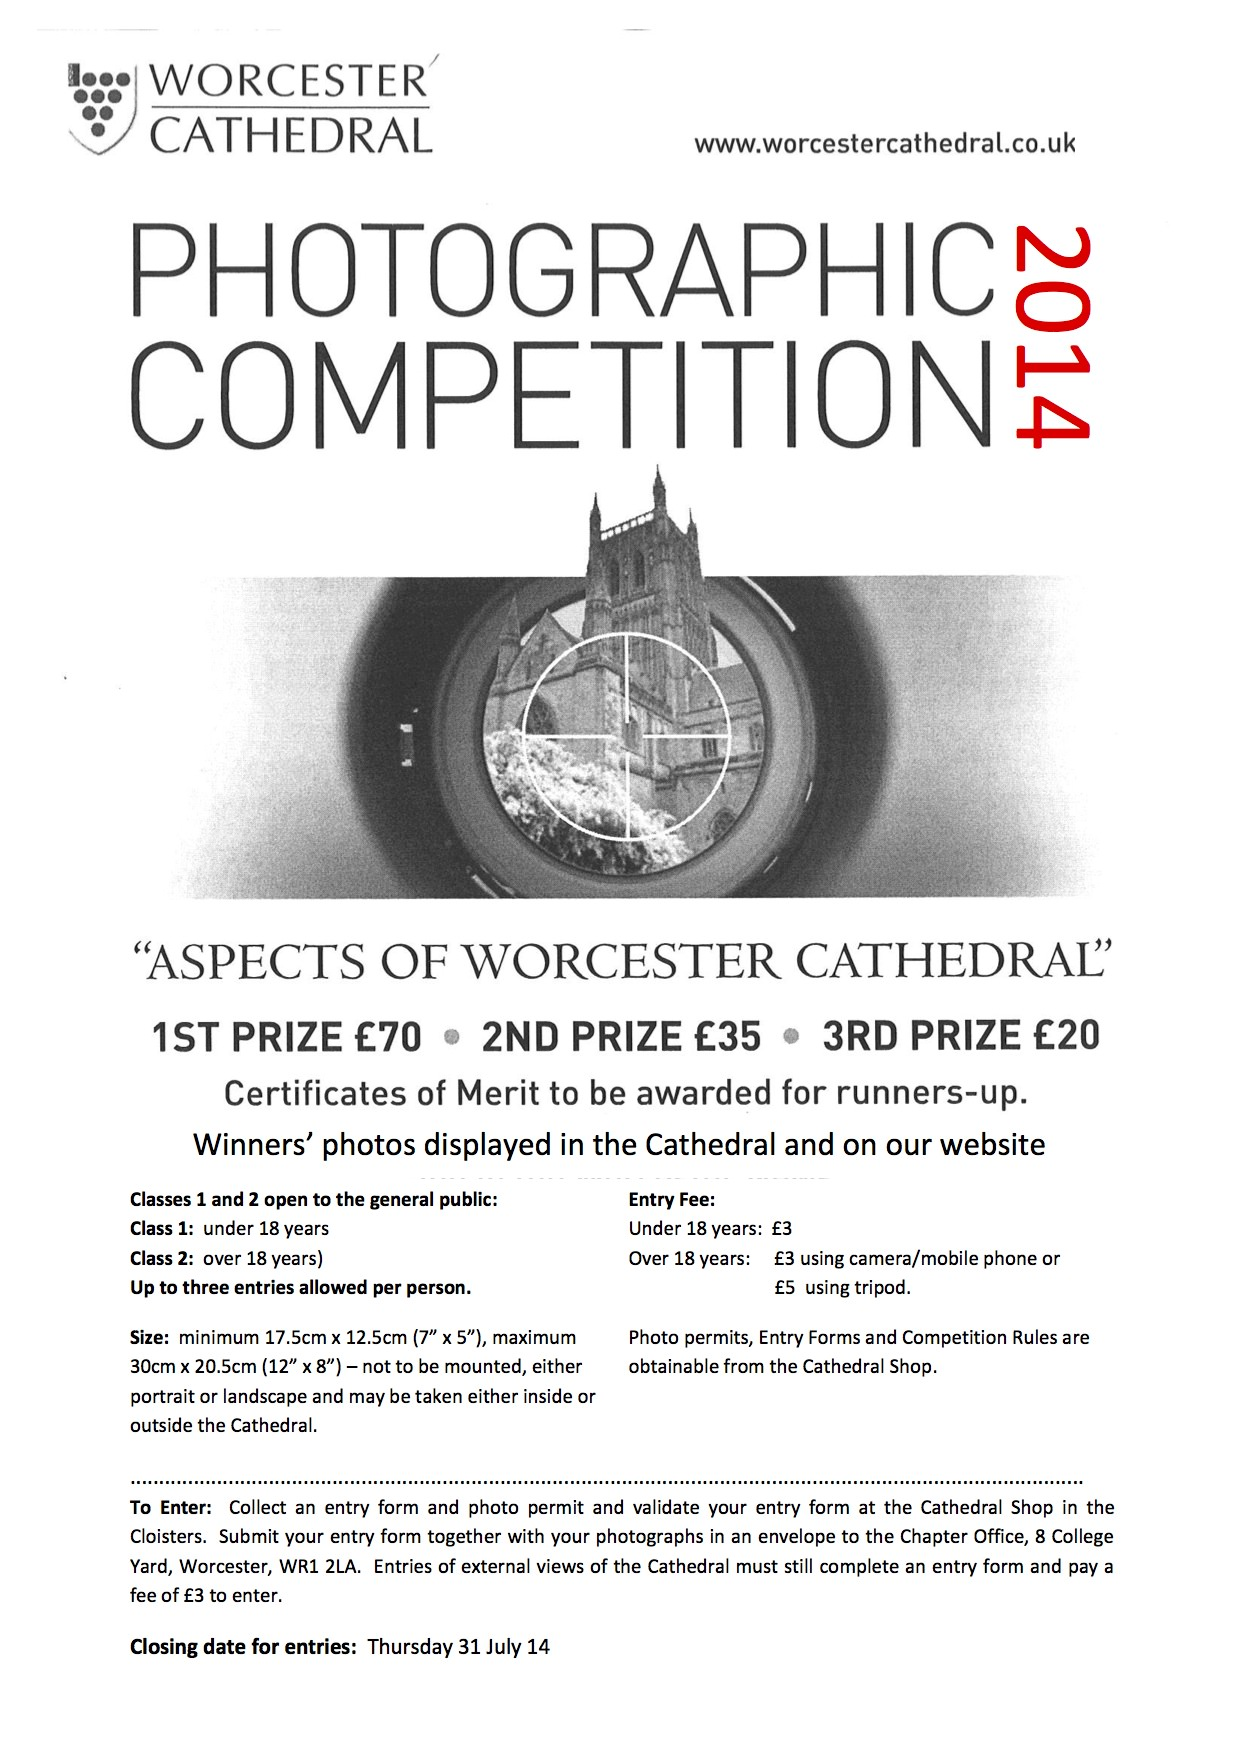 Photographic Competition poster 2014